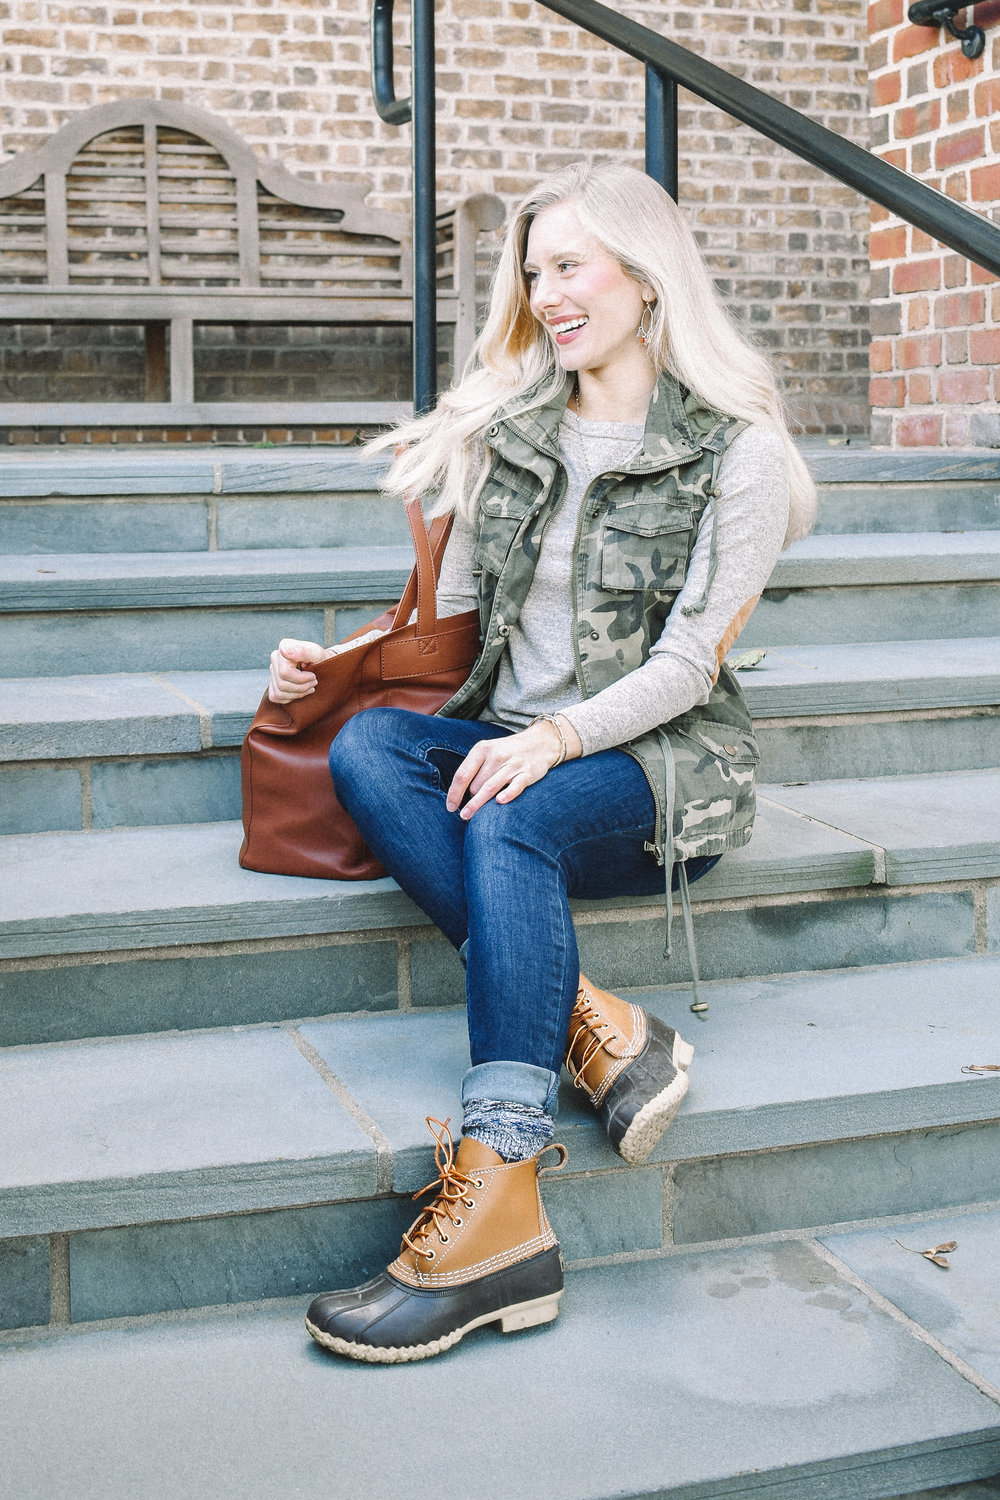 Bean Boots | Where to Find | Fall Boots | Fall Fashion | Petite Blogger | Bean Boots Styled